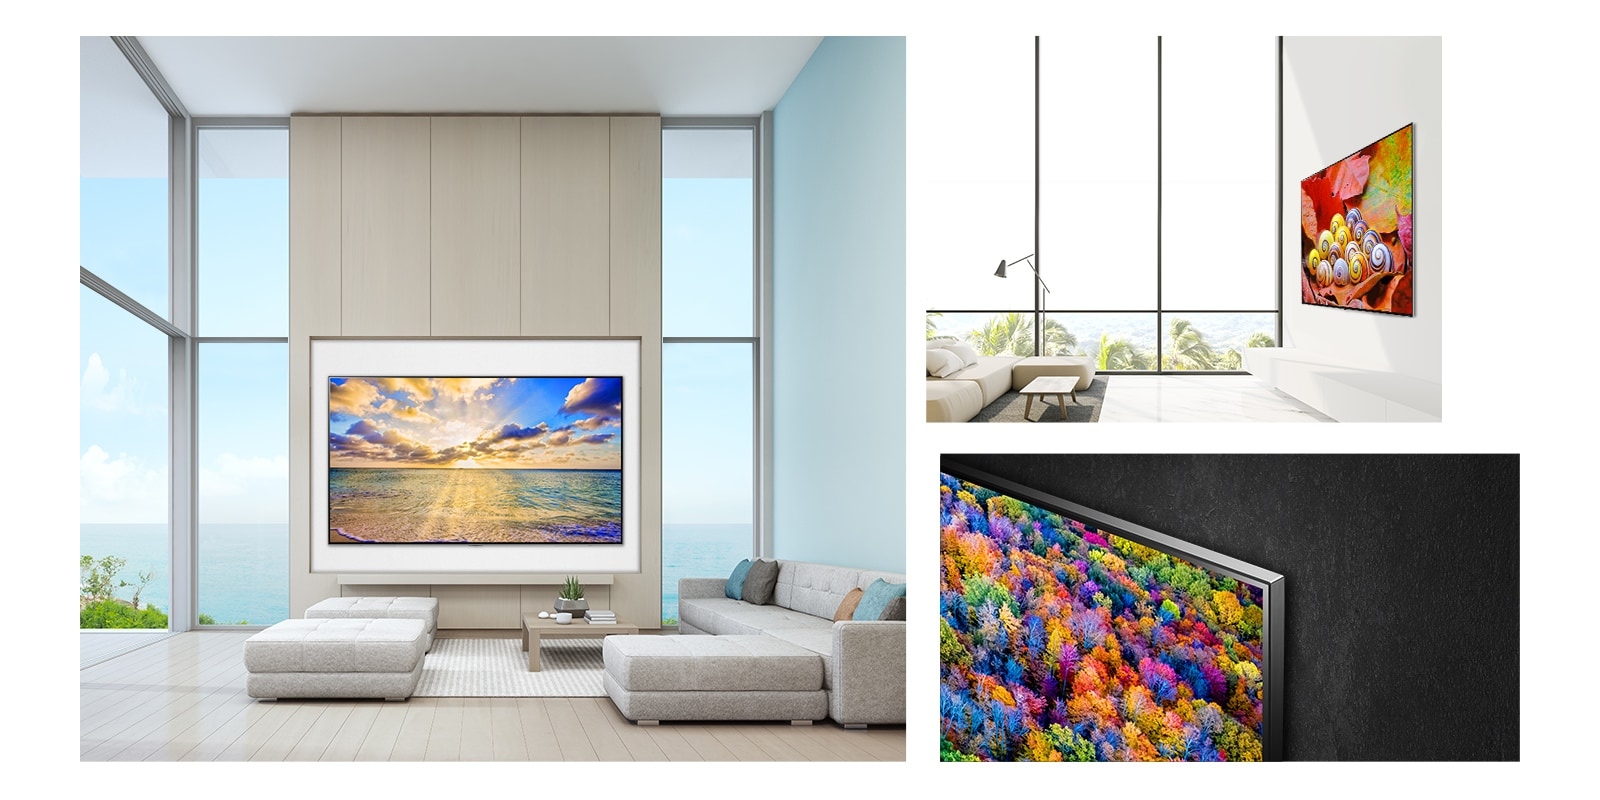 Three scenes of the LG NanoCell TV hung beautifully in a home showing the slim, wall mounted design.